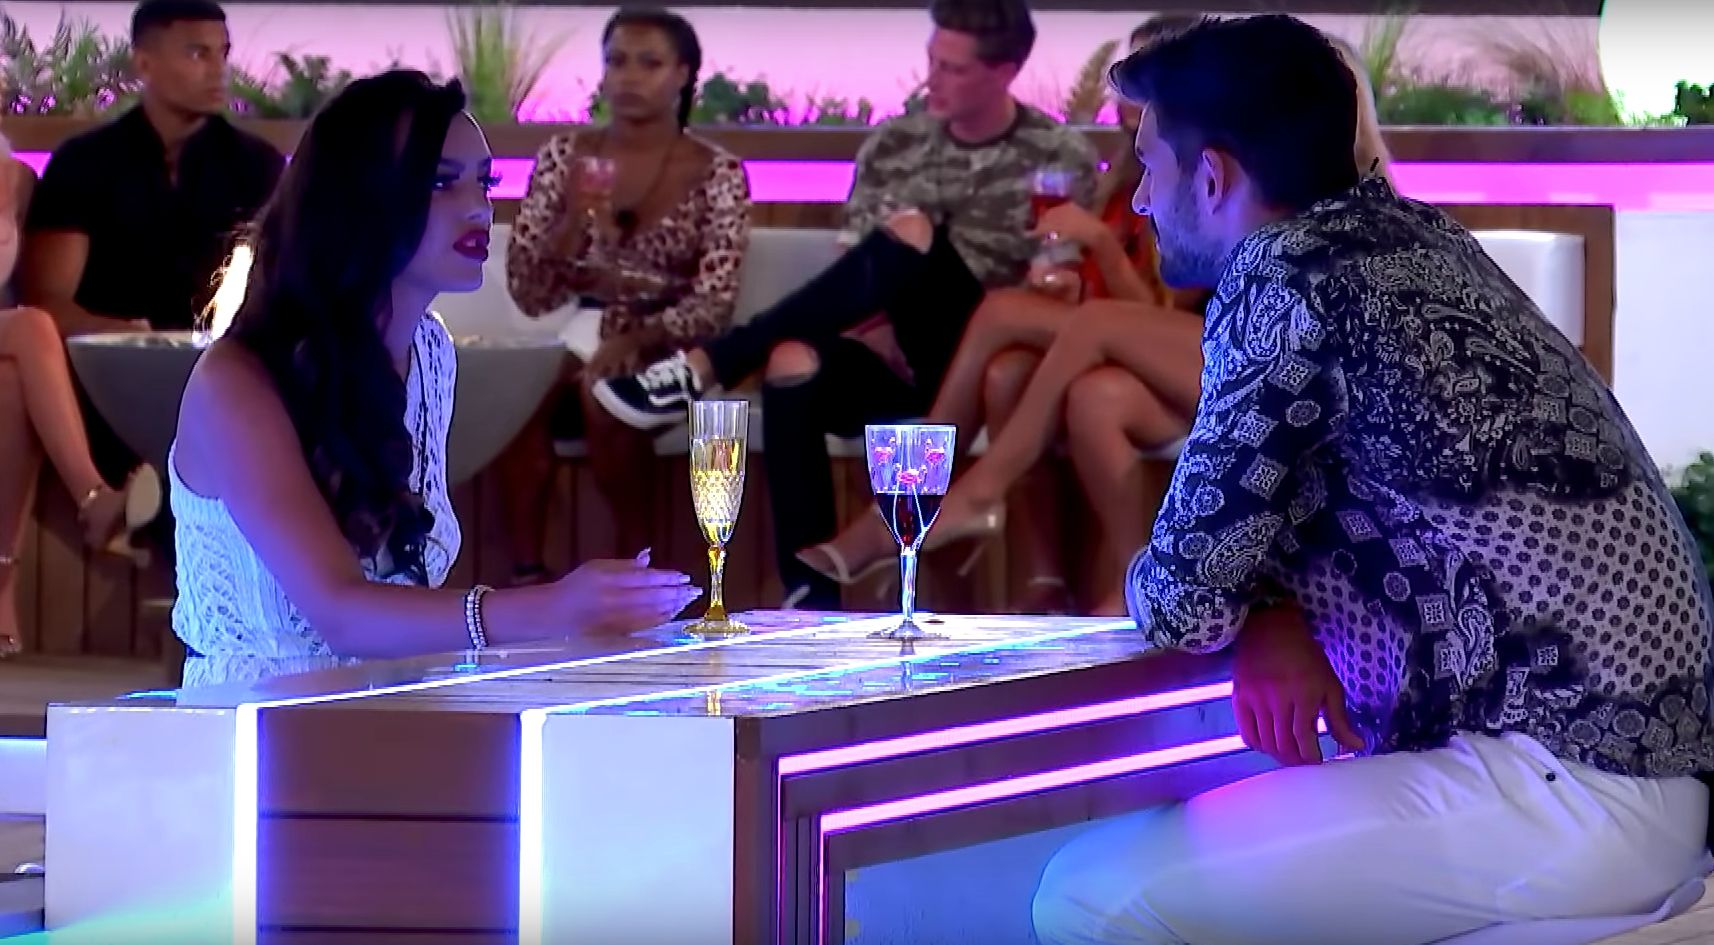 Adam's Behaviour Towards Rosie Sparks Ofcom Complaints From 'Love Island'